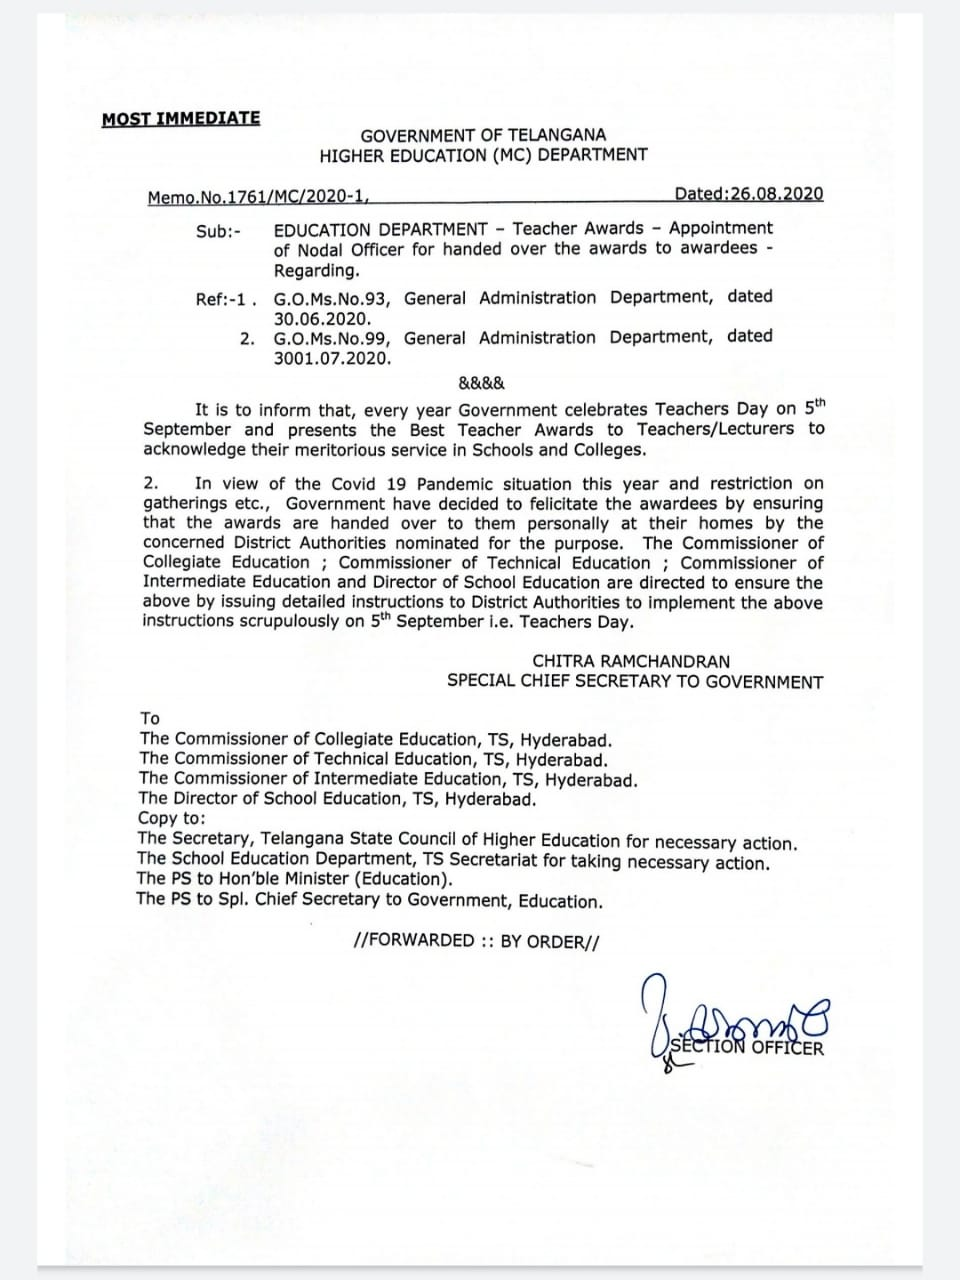 Appointment of Nodal Officer for handed over the awards to Teacher awardees Memo.No.1761/MC/2020-1, Dated:26.08.2020